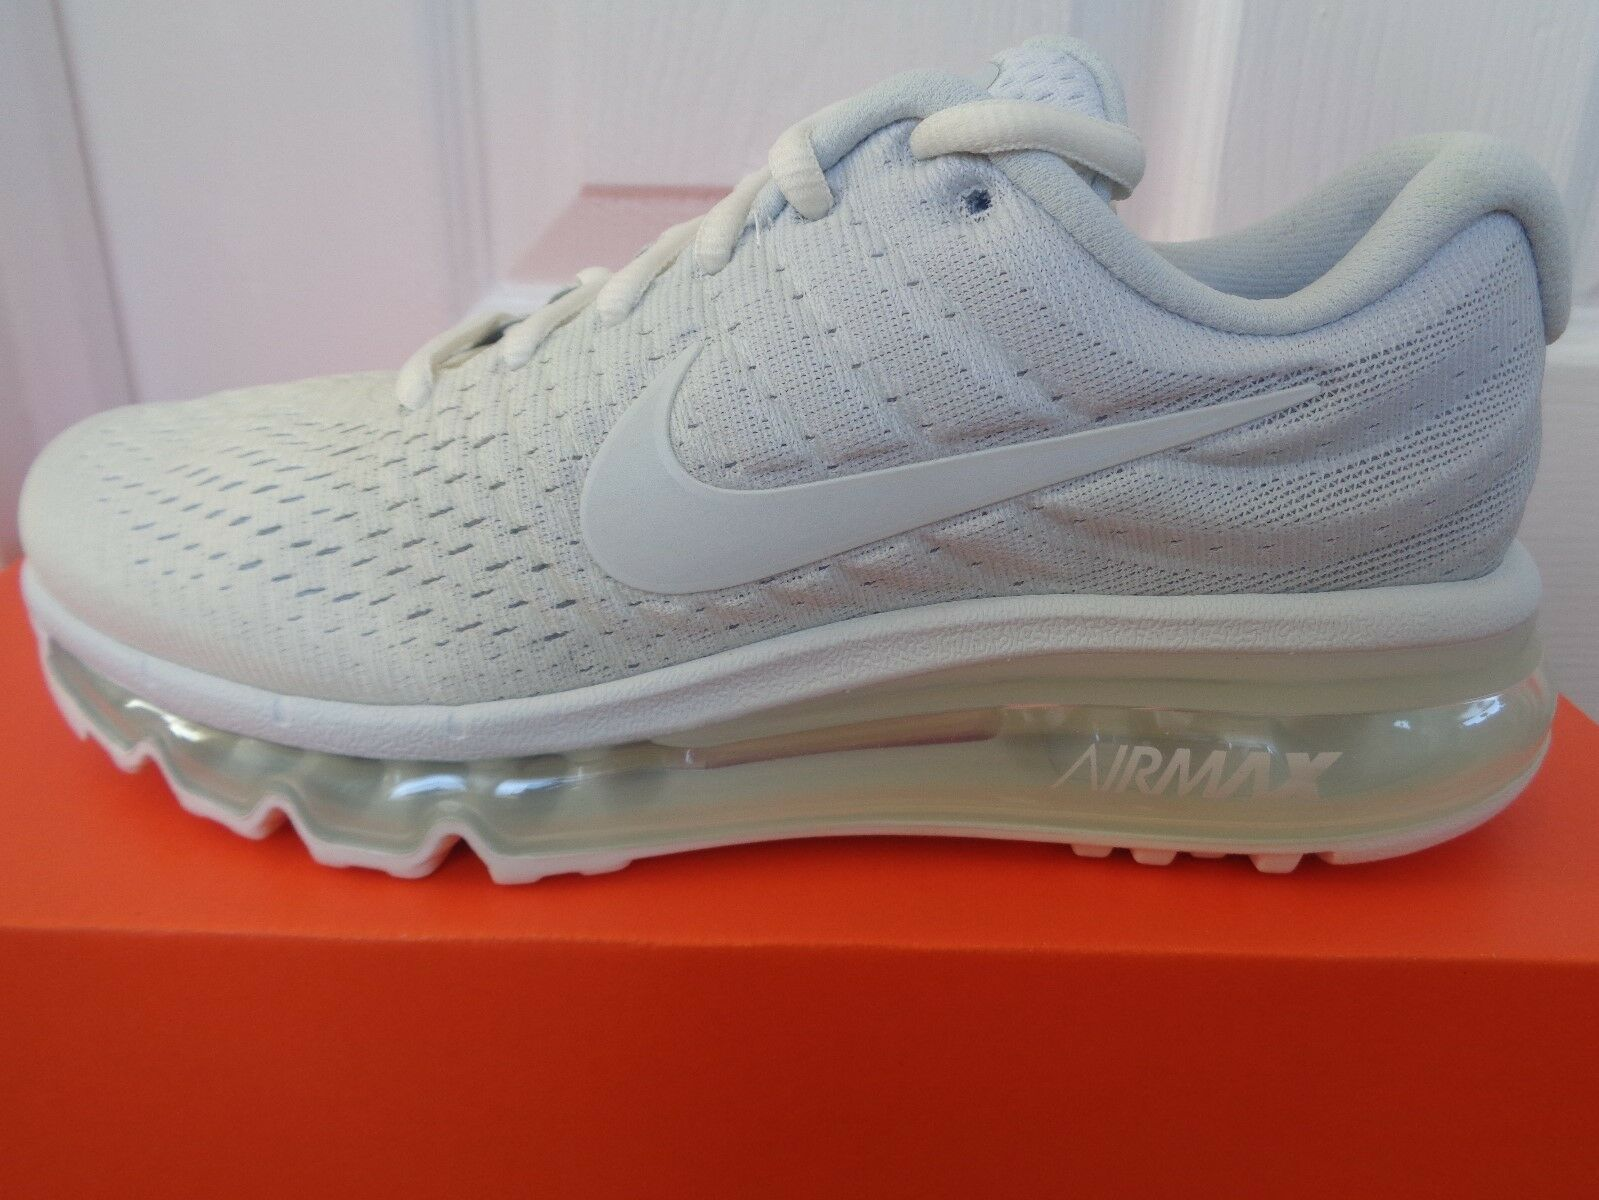 Nike Air max 2017 wmns trainers sneakers 849560 005 uk 5 eu 38.5 us 7.5 NEW+BOX